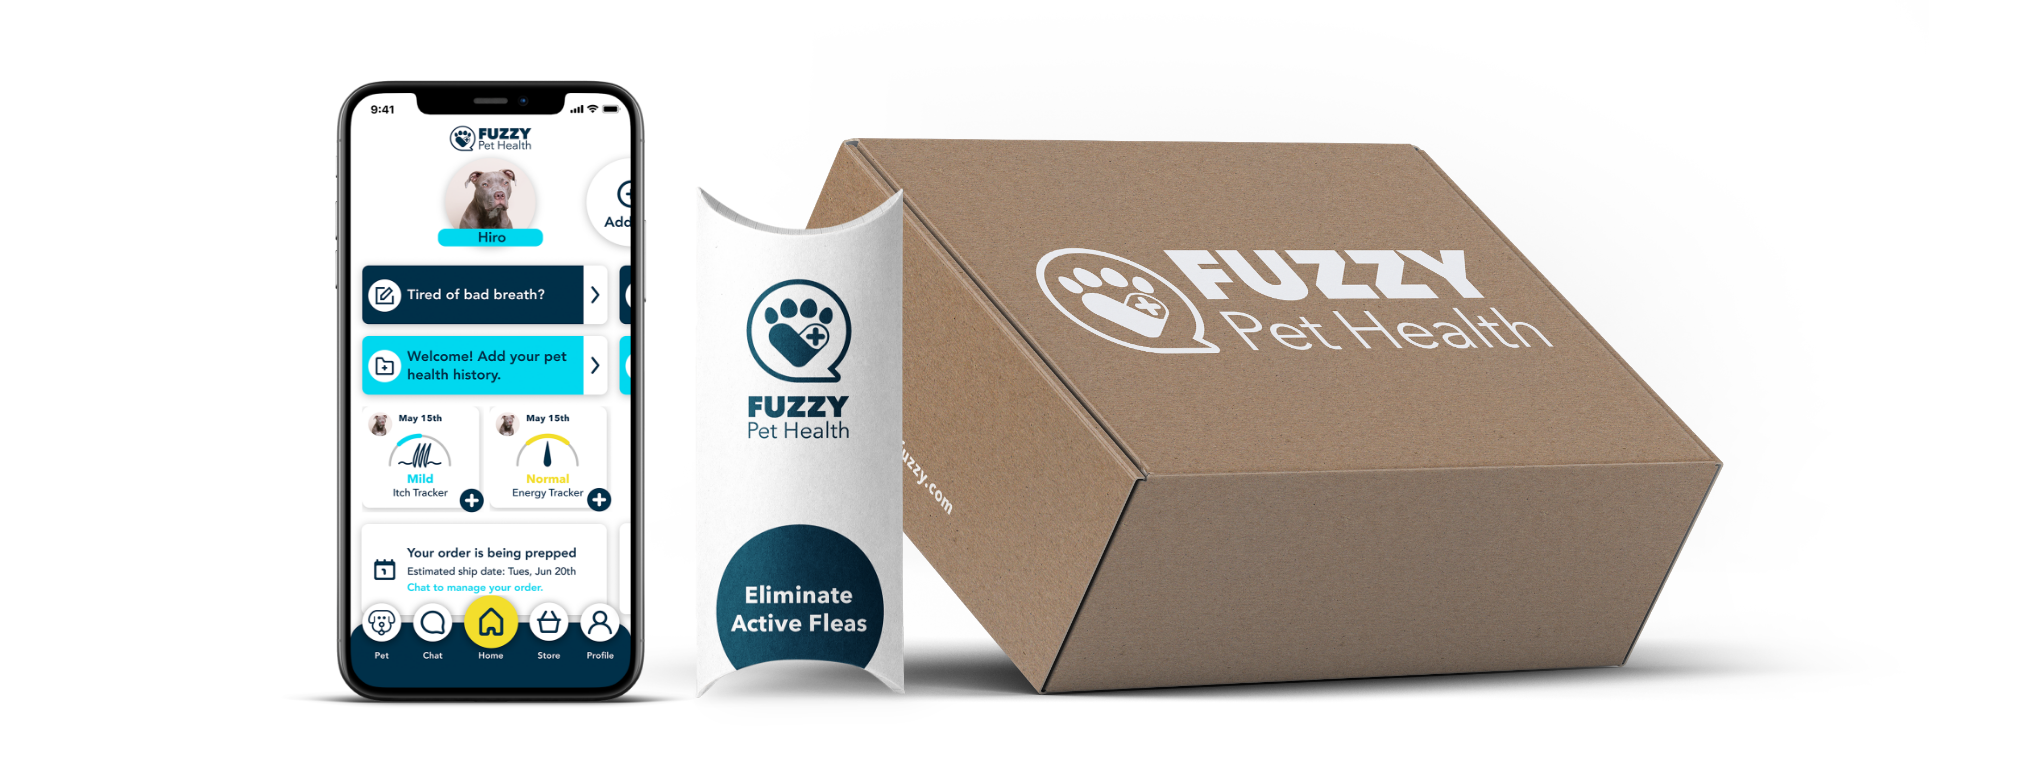 Unleash The Power of Personalized Pet Care Image